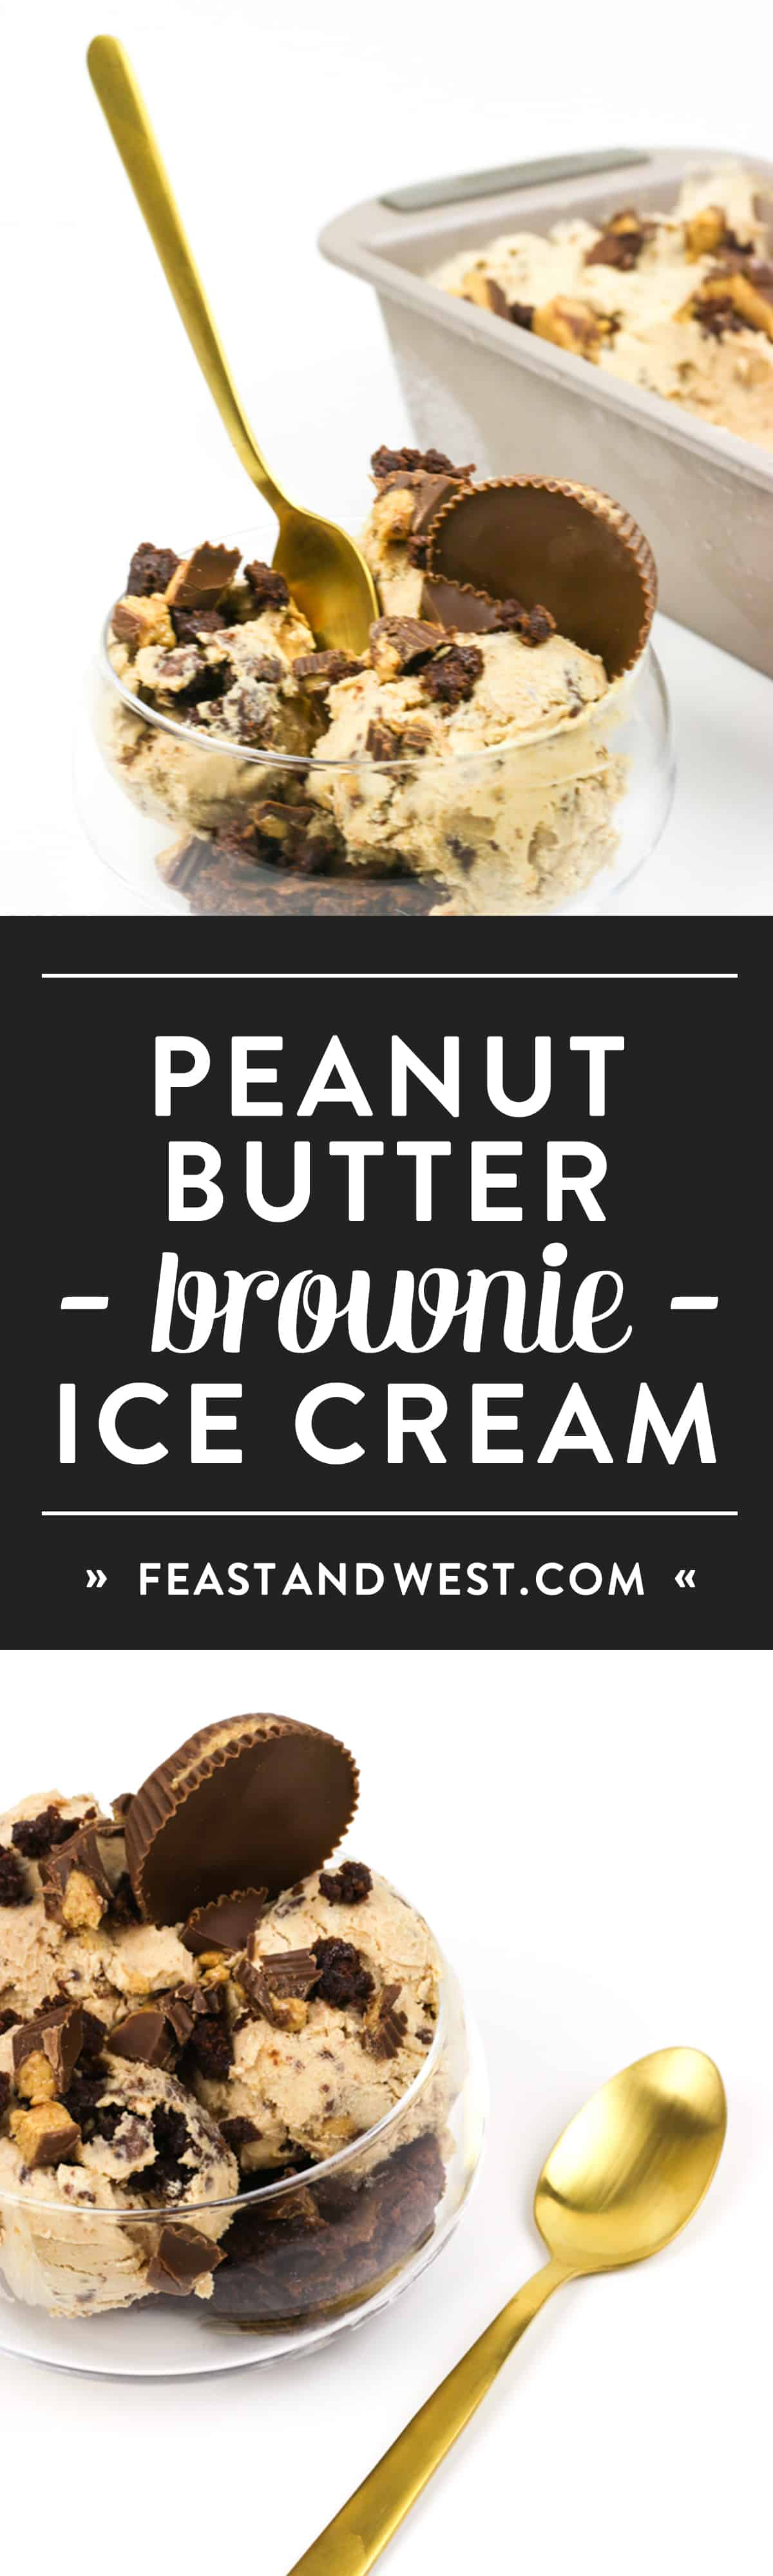 Peanut Butter Brownie Ice Cream is the stuff dreams are made of — if you love peanut butter and chocolate together. Lucious, creamy peanut butter ice cream is studded with fudgy brownie chunks and peanut butter cup pieces. (via feastandwest.com)